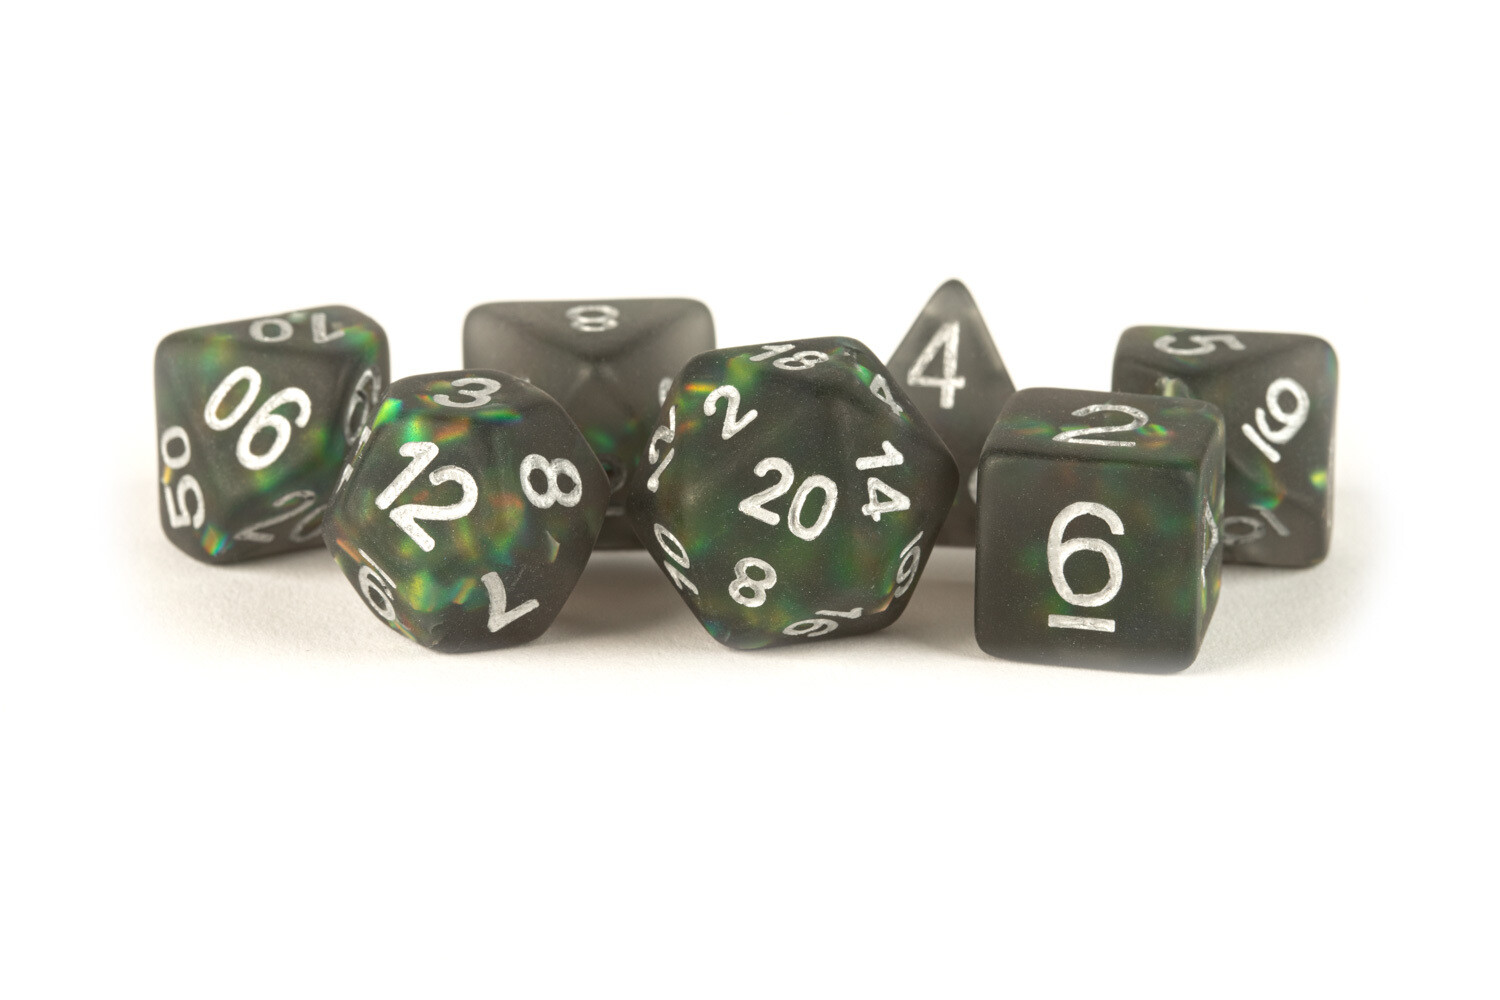 Icy Opal Black with Silver Numbers 16mm Poly Dice Set 7 Die Polyhedral RPG Tabletop Gaming